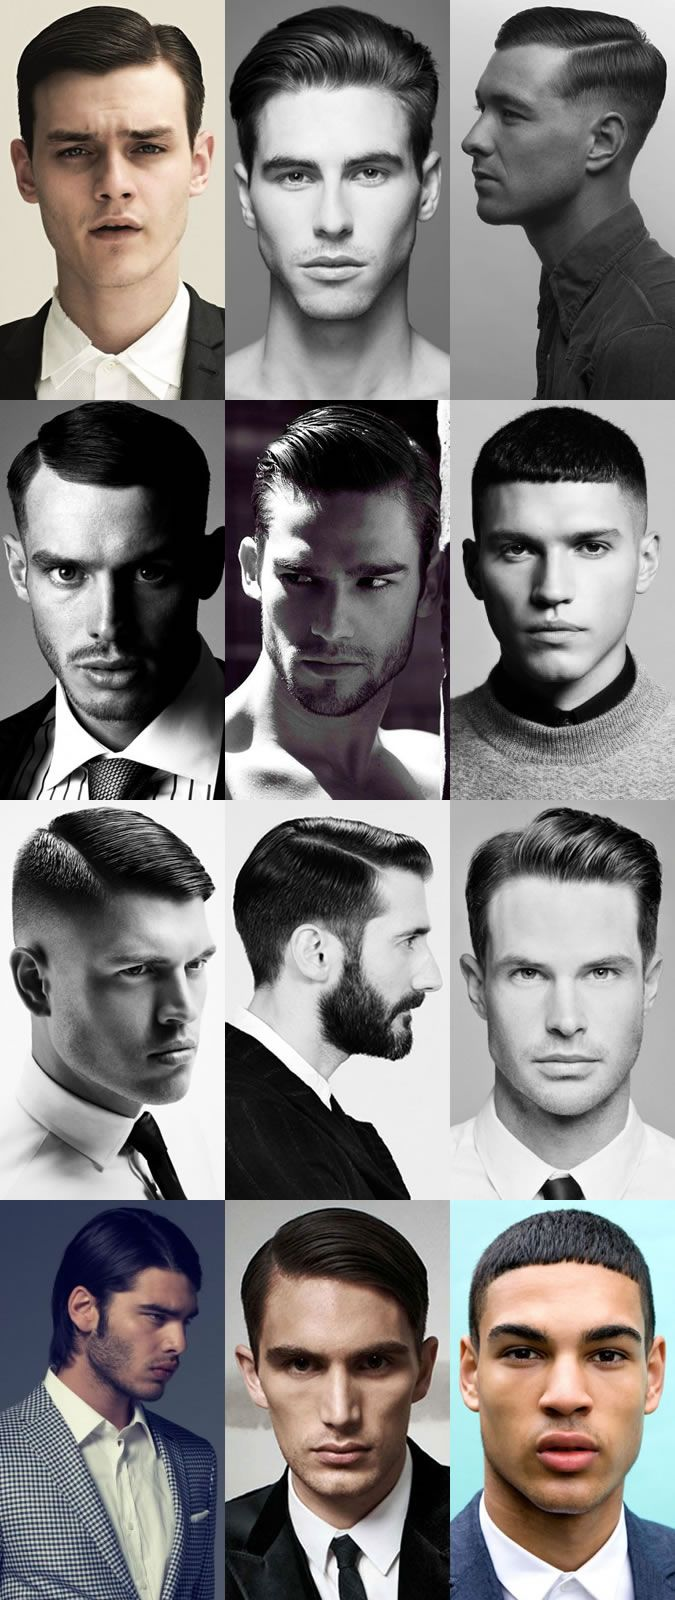 Men's Hair Styling Tips 35 Best Hair Style Images On Pinterest  Man's Hairstyle Hair Cut